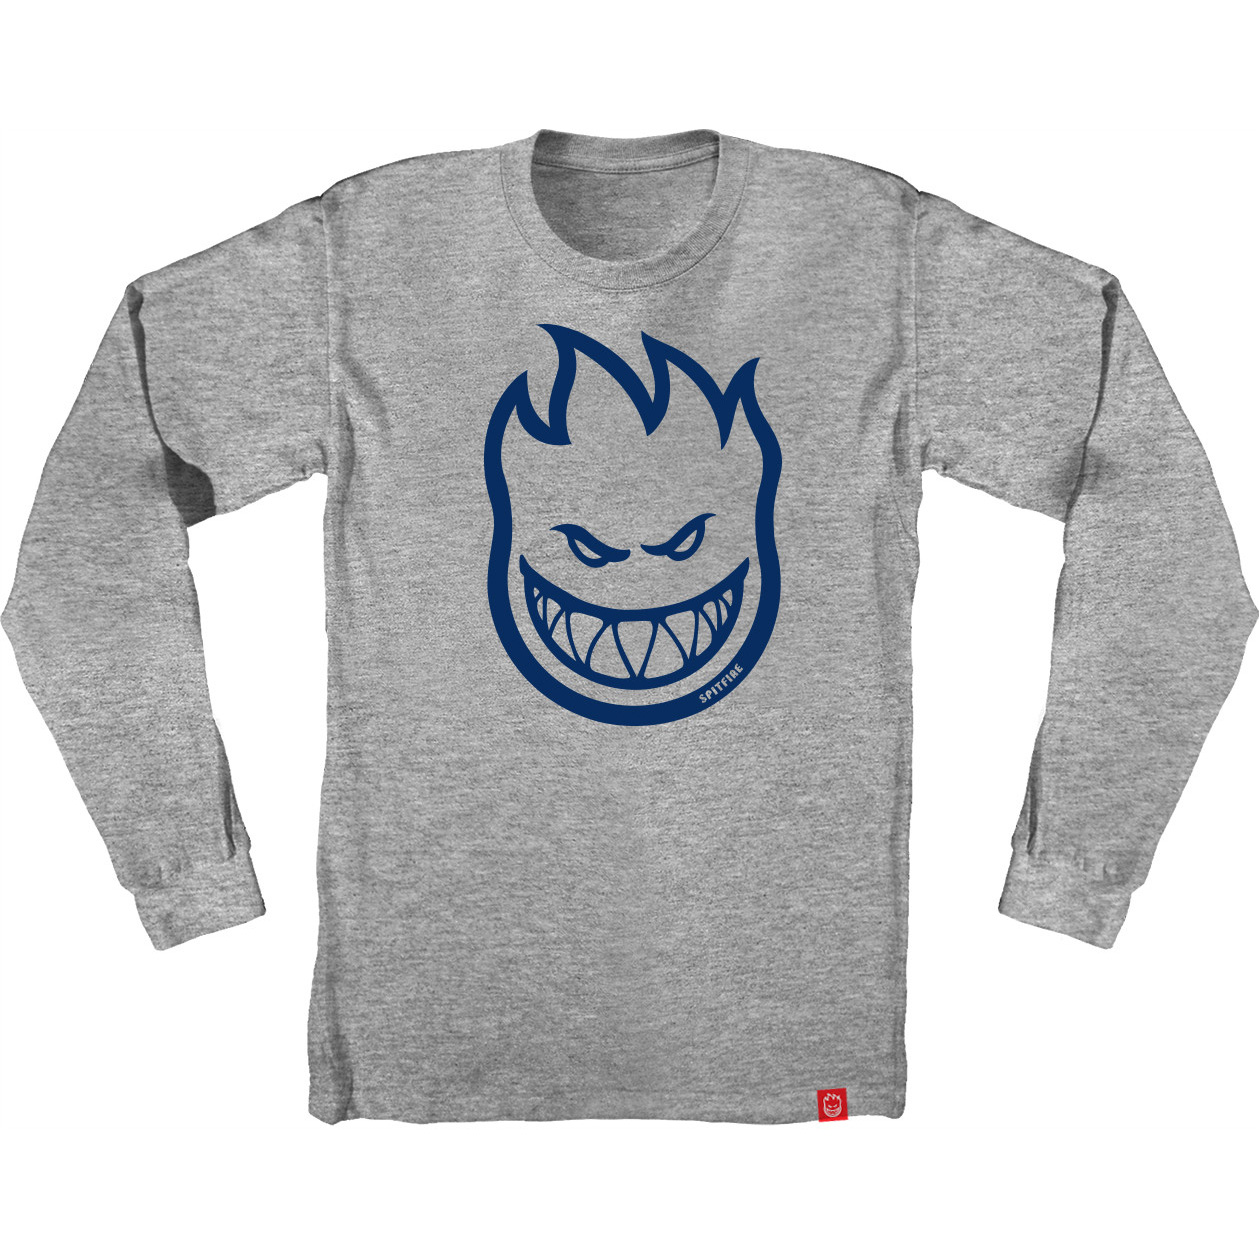 SF LS TEE BIGHEAD HTH/BLU S - Click to enlarge